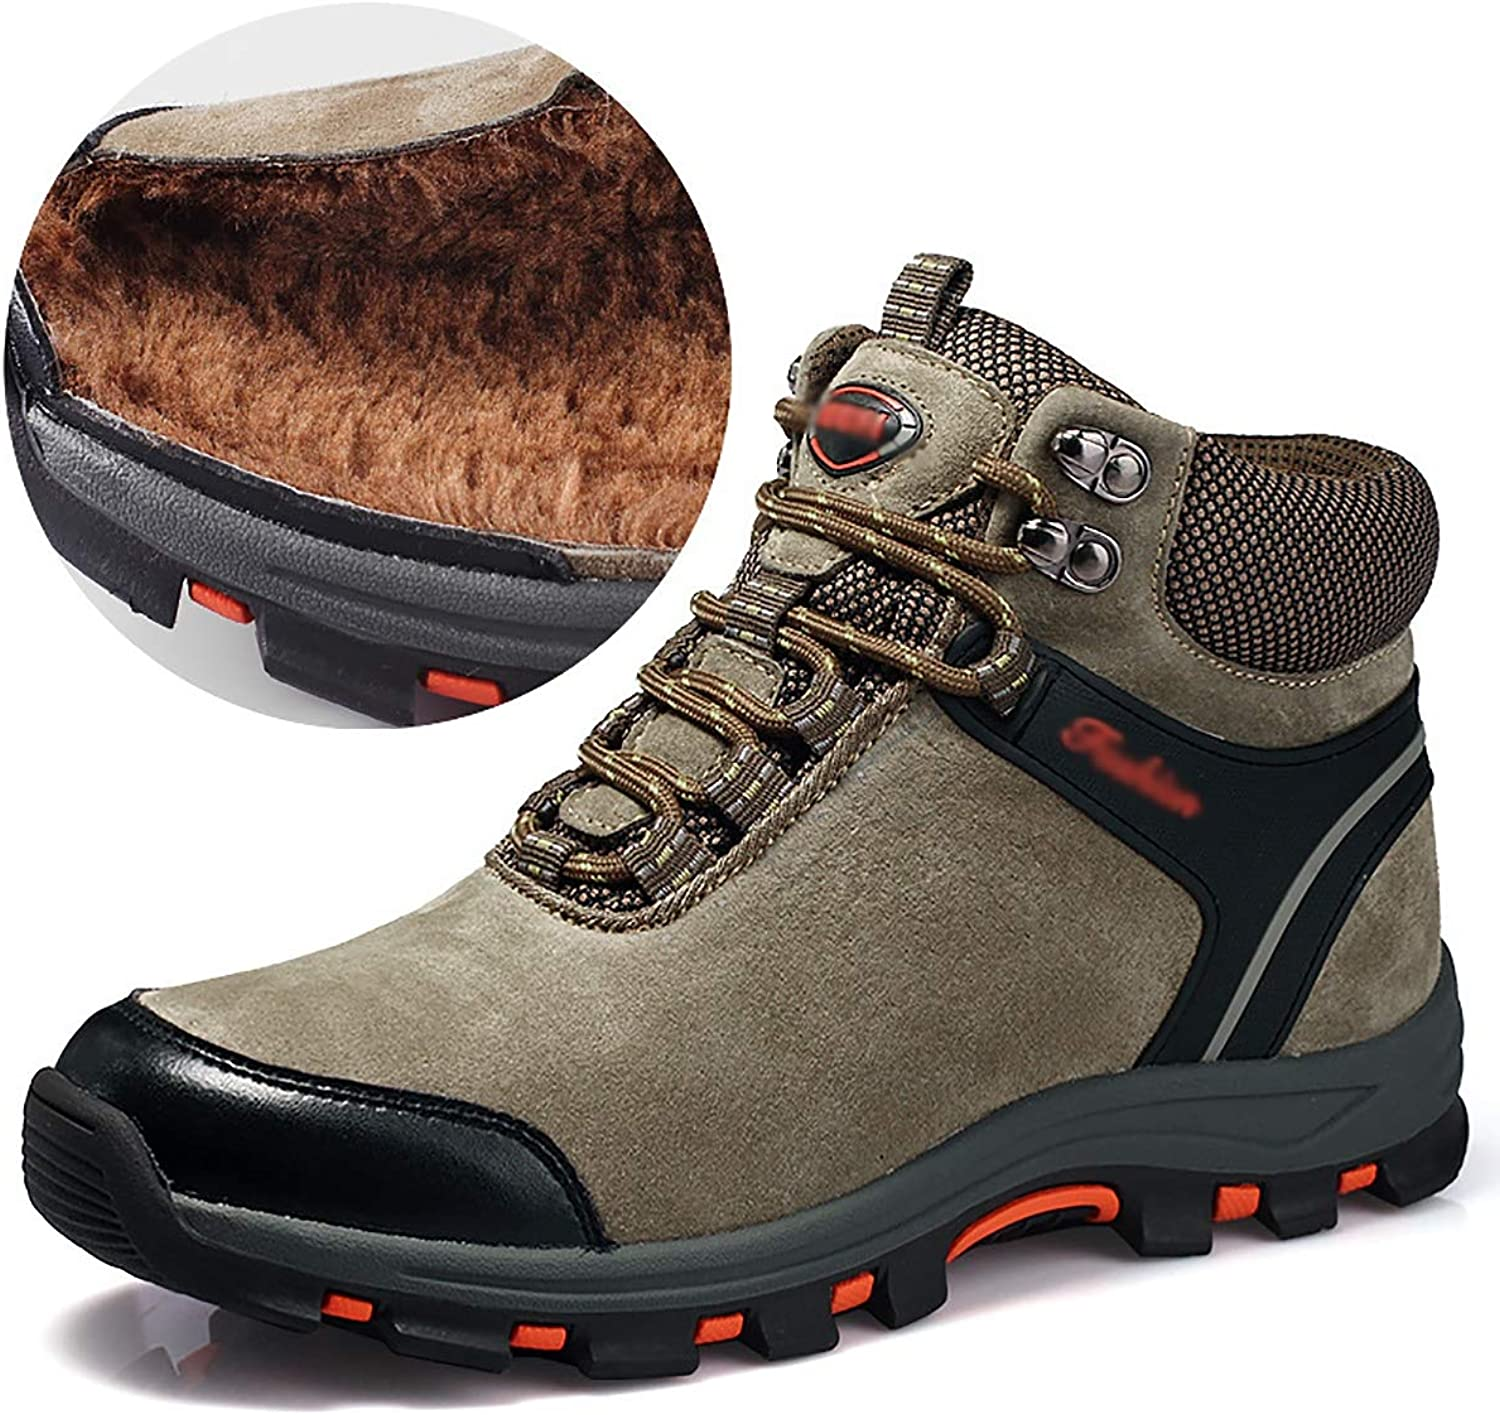 Fad-J Leather men's high-wearing hiking shoes, plus velvet warm sports outdoor shoes,Brown,42